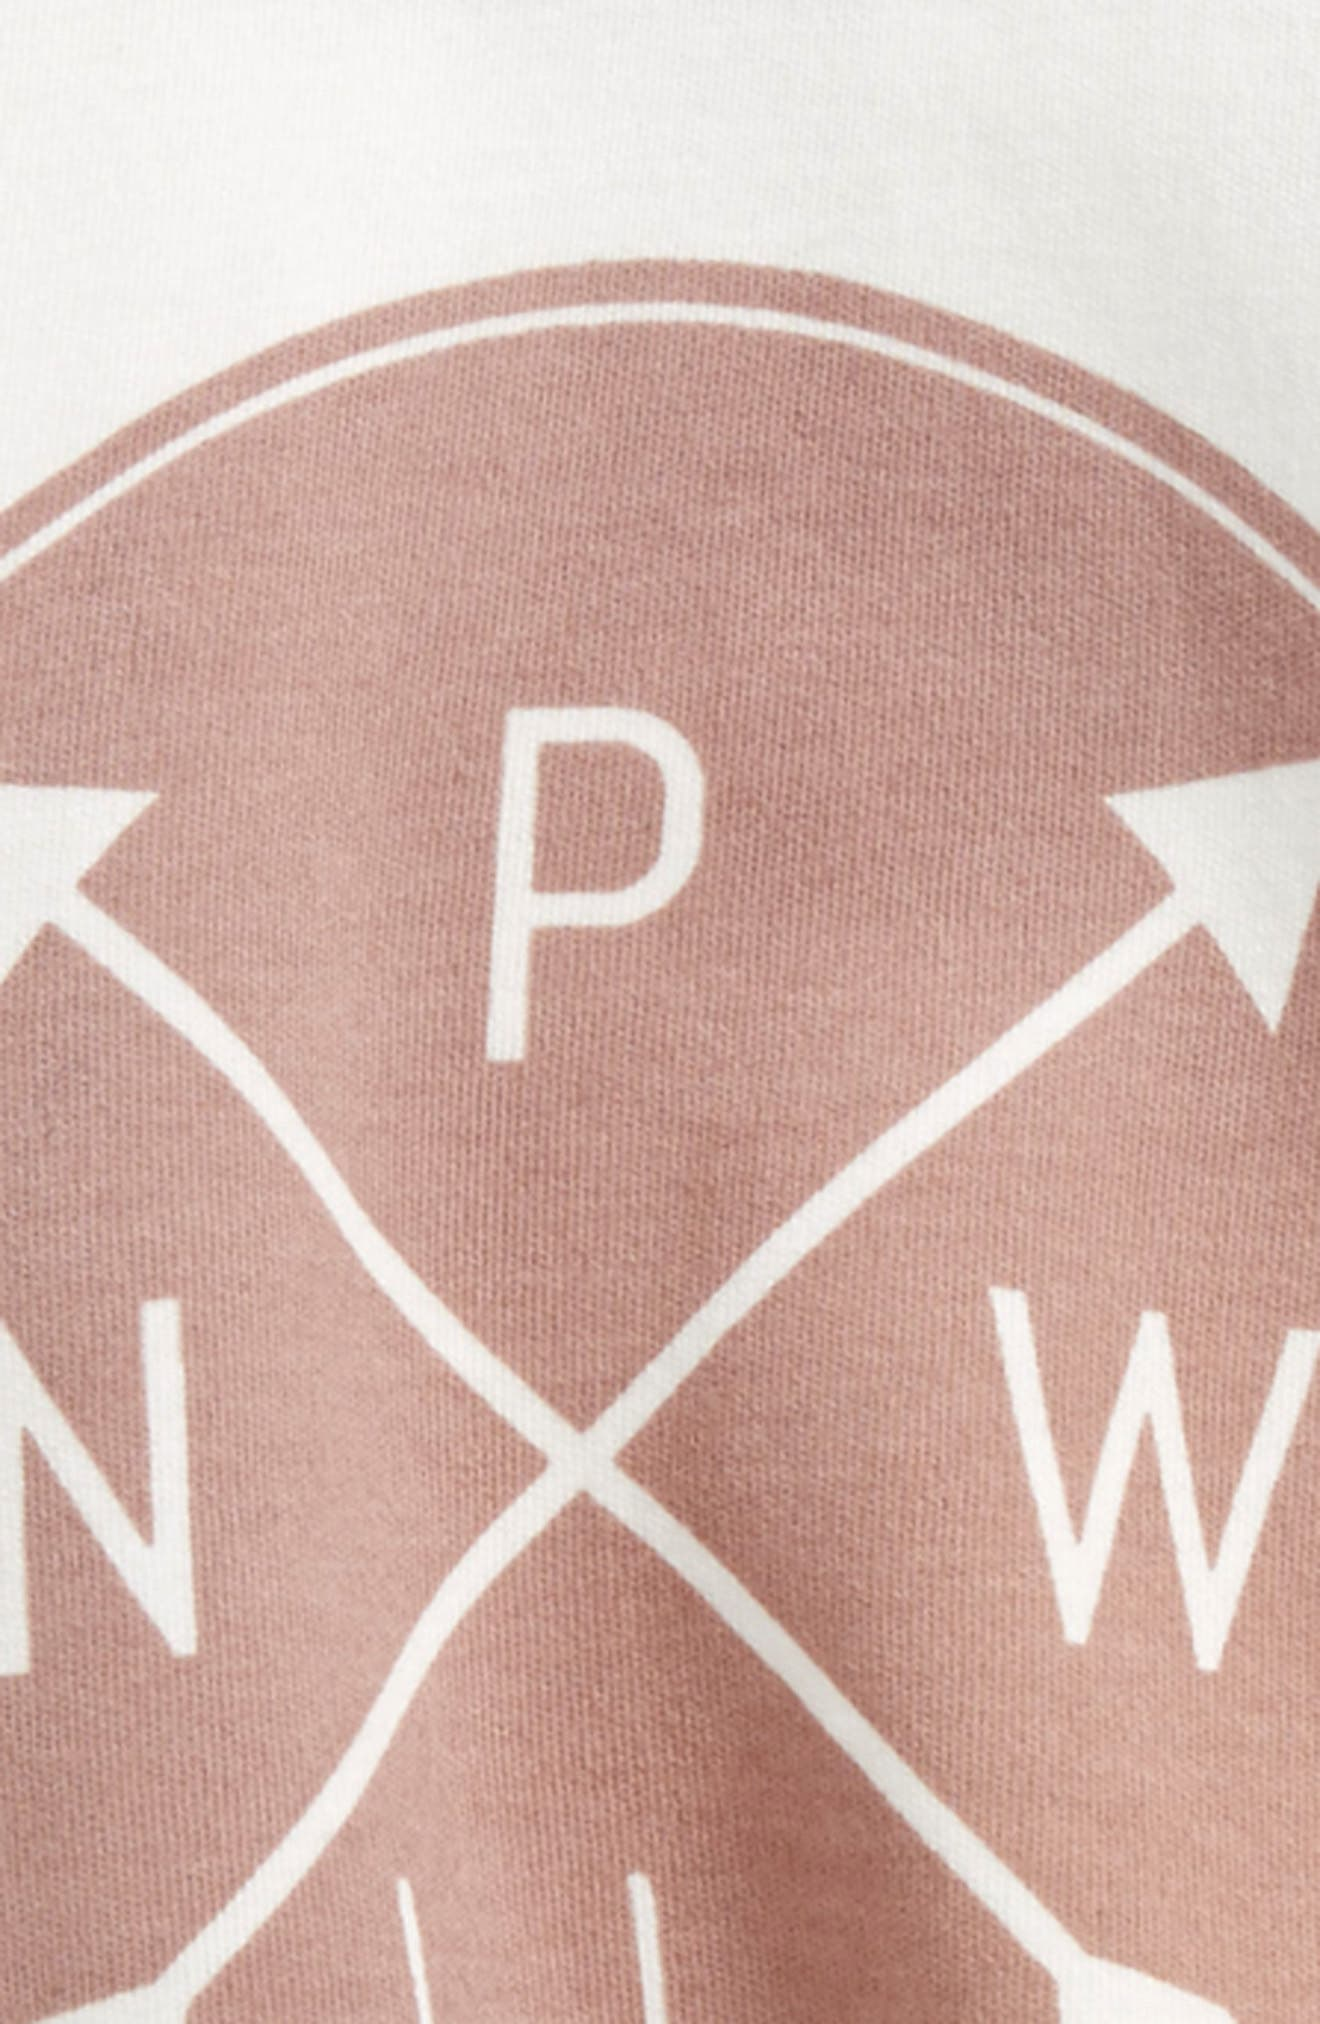 PNW Logo Organic Cotton Tee,                             Alternate thumbnail 2, color,                             OFF WHITE/ WOODROSE/ GREY